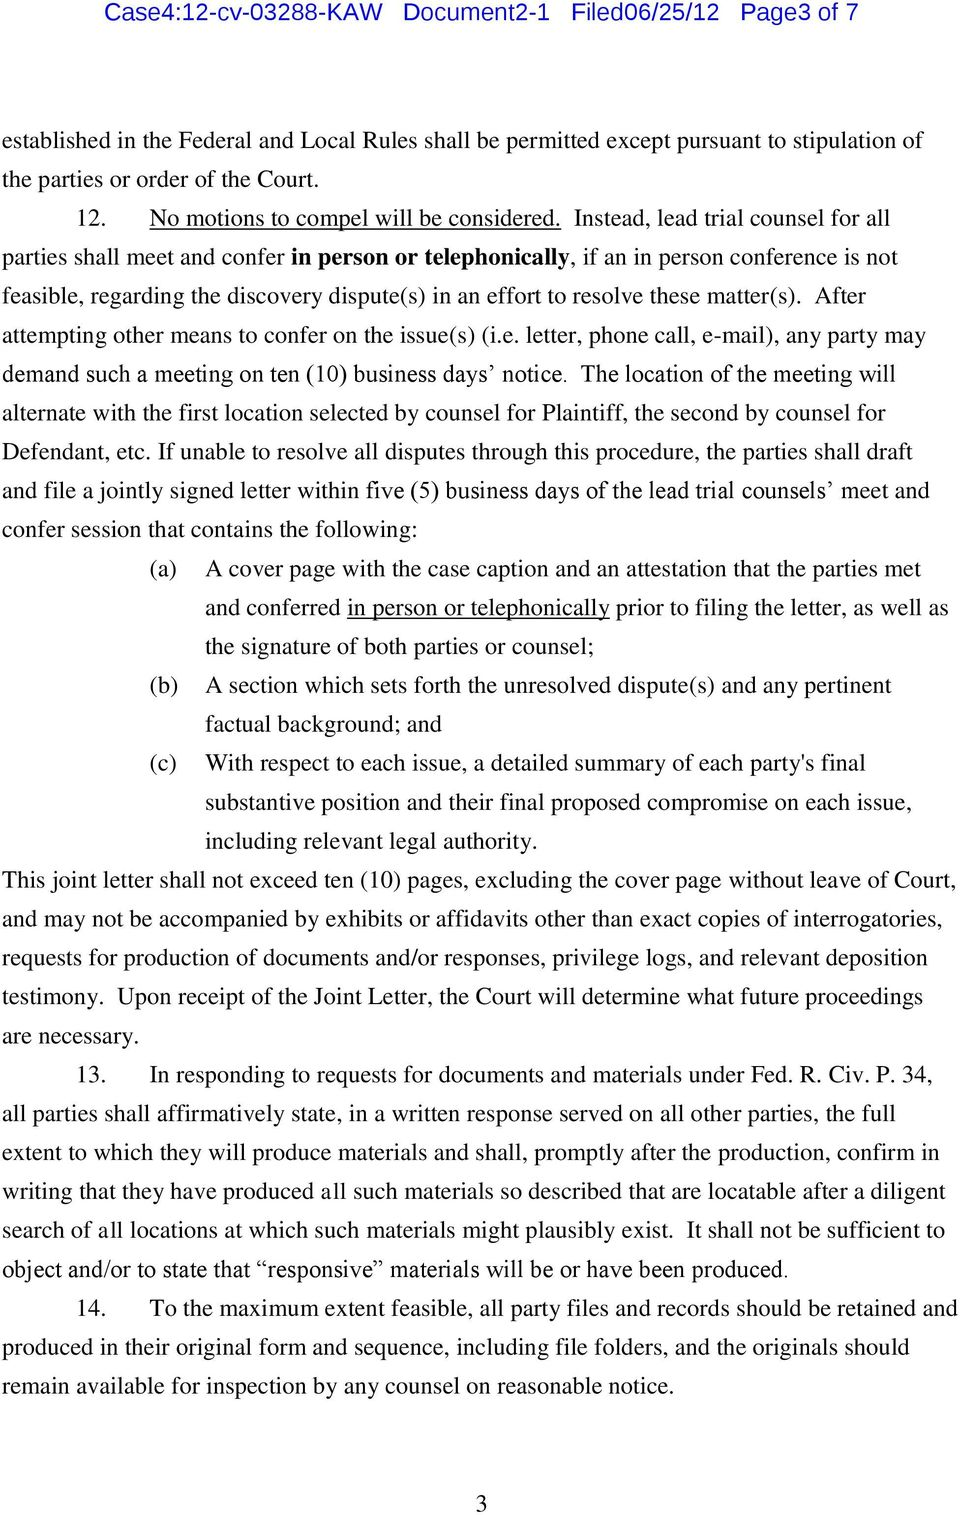 Instead, lead trial counsel for all parties shall meet and confer in person or telephonically, if an in person conference is not feasible, regarding the discovery dispute(s) in an effort to resolve